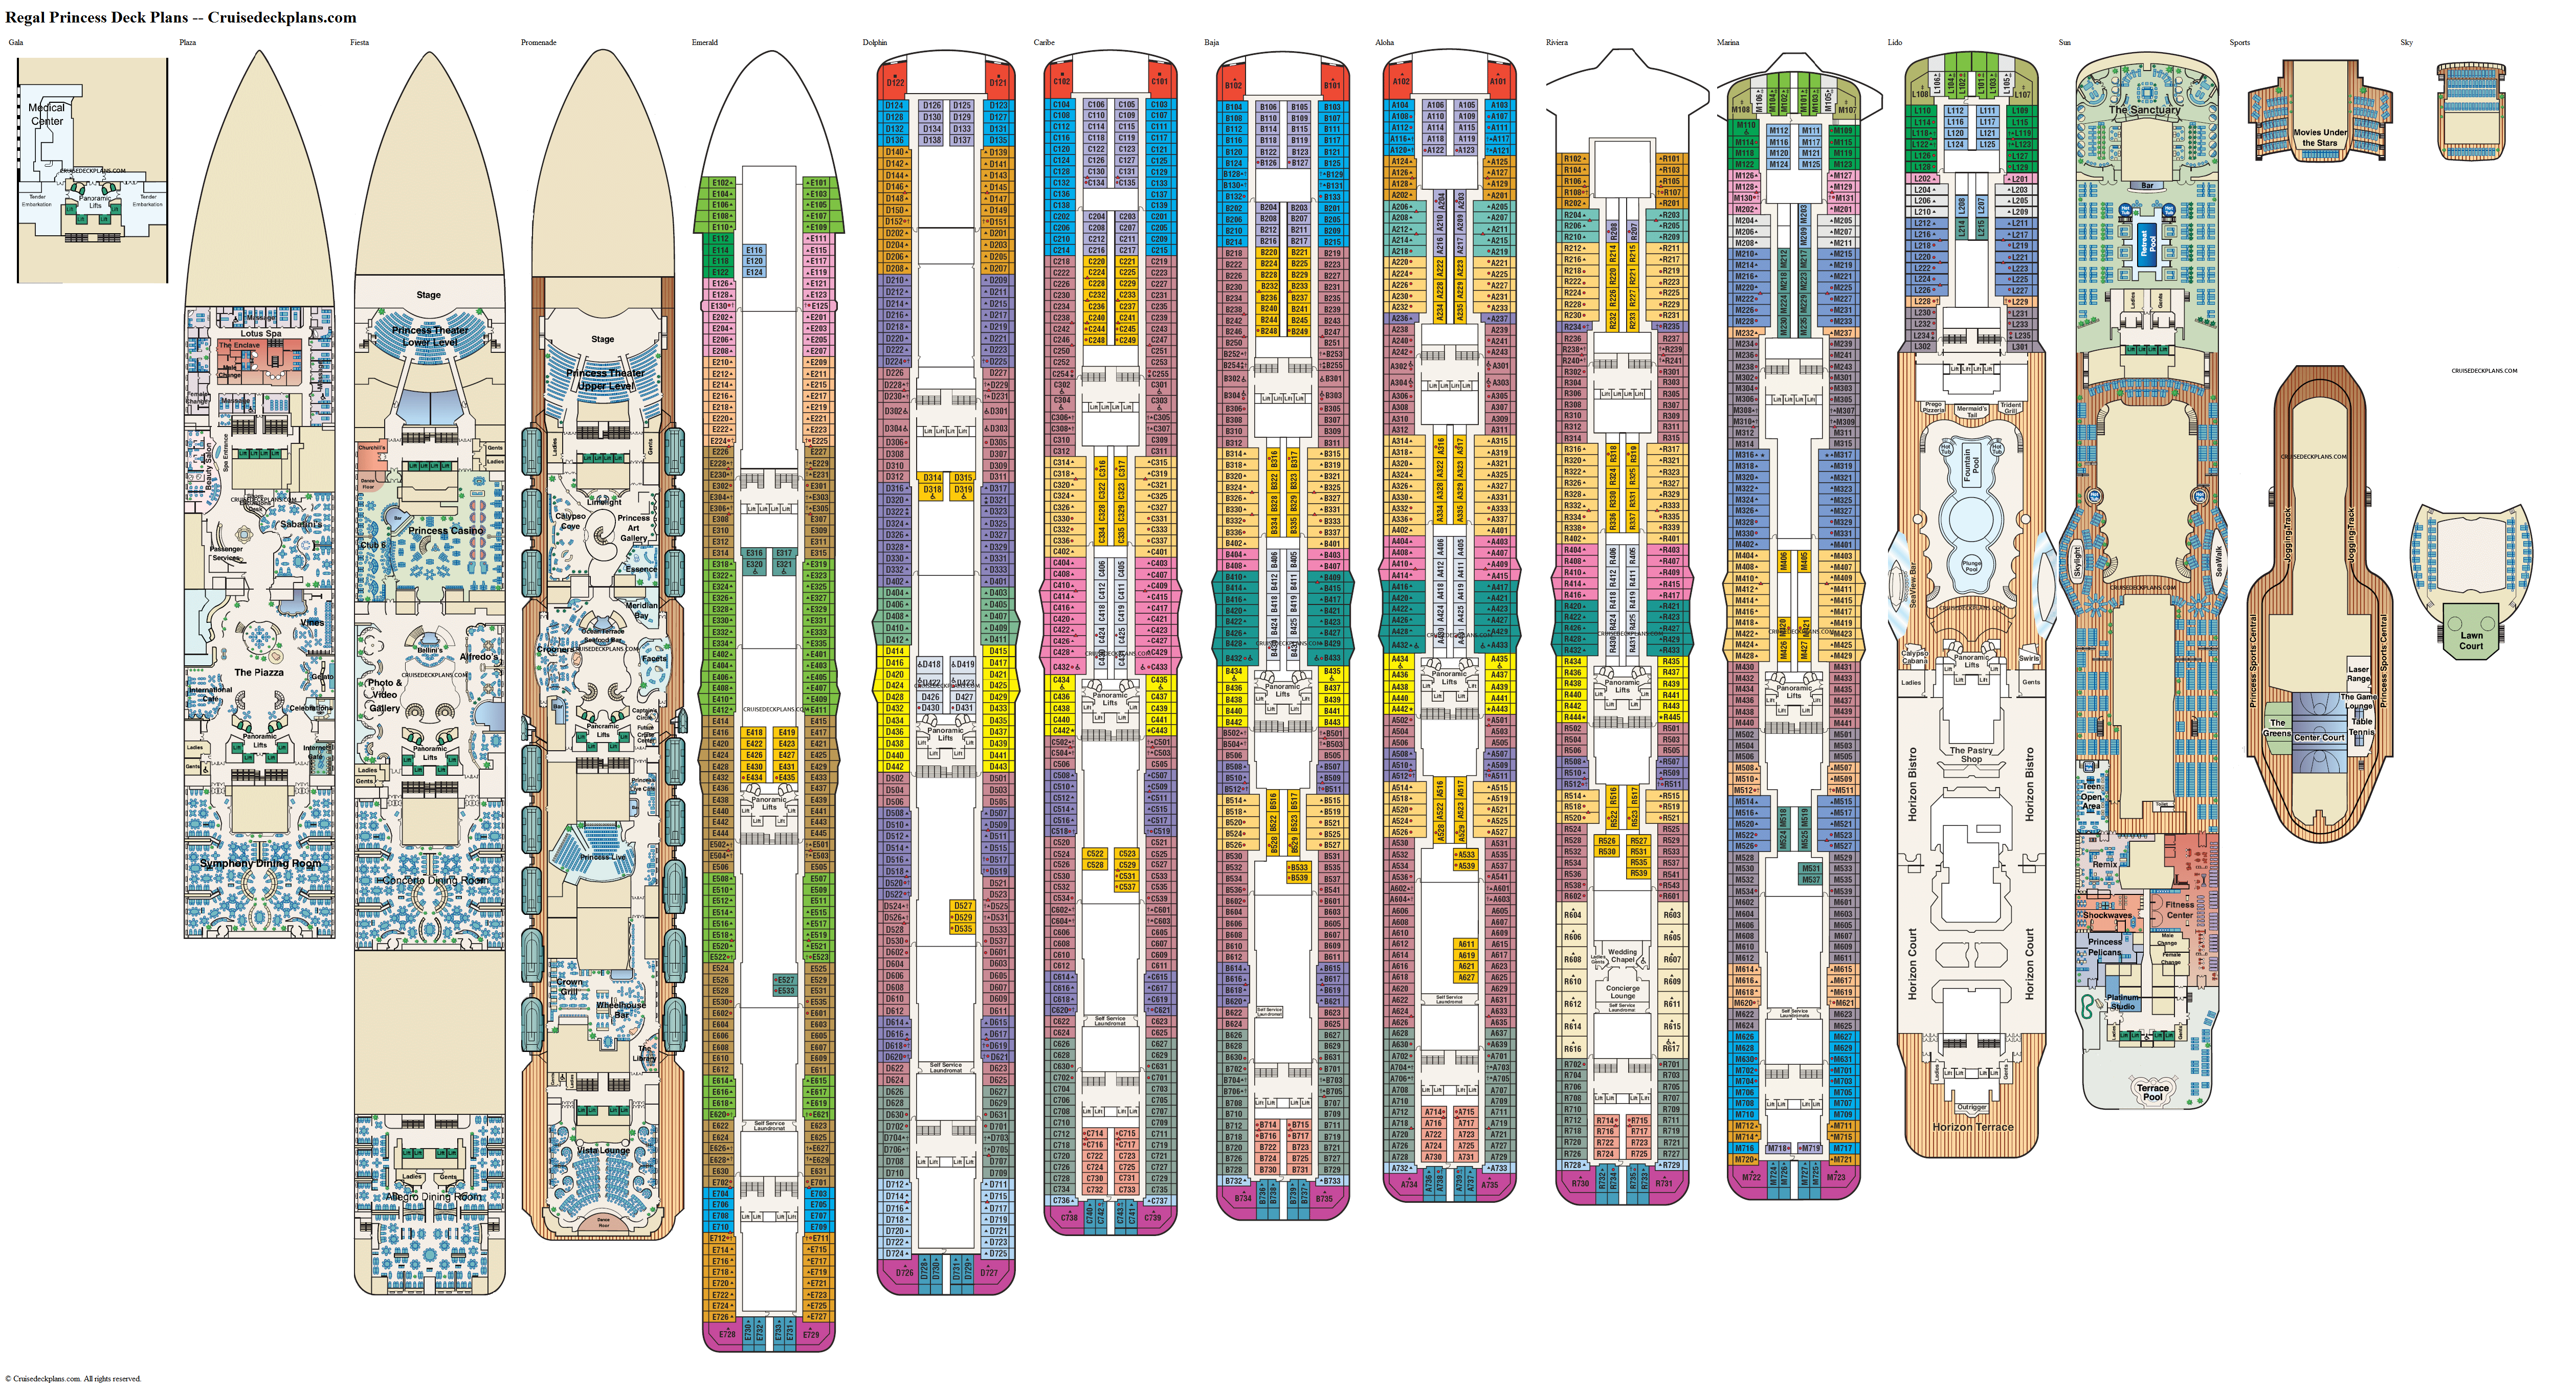 Regal Princess deck plans image